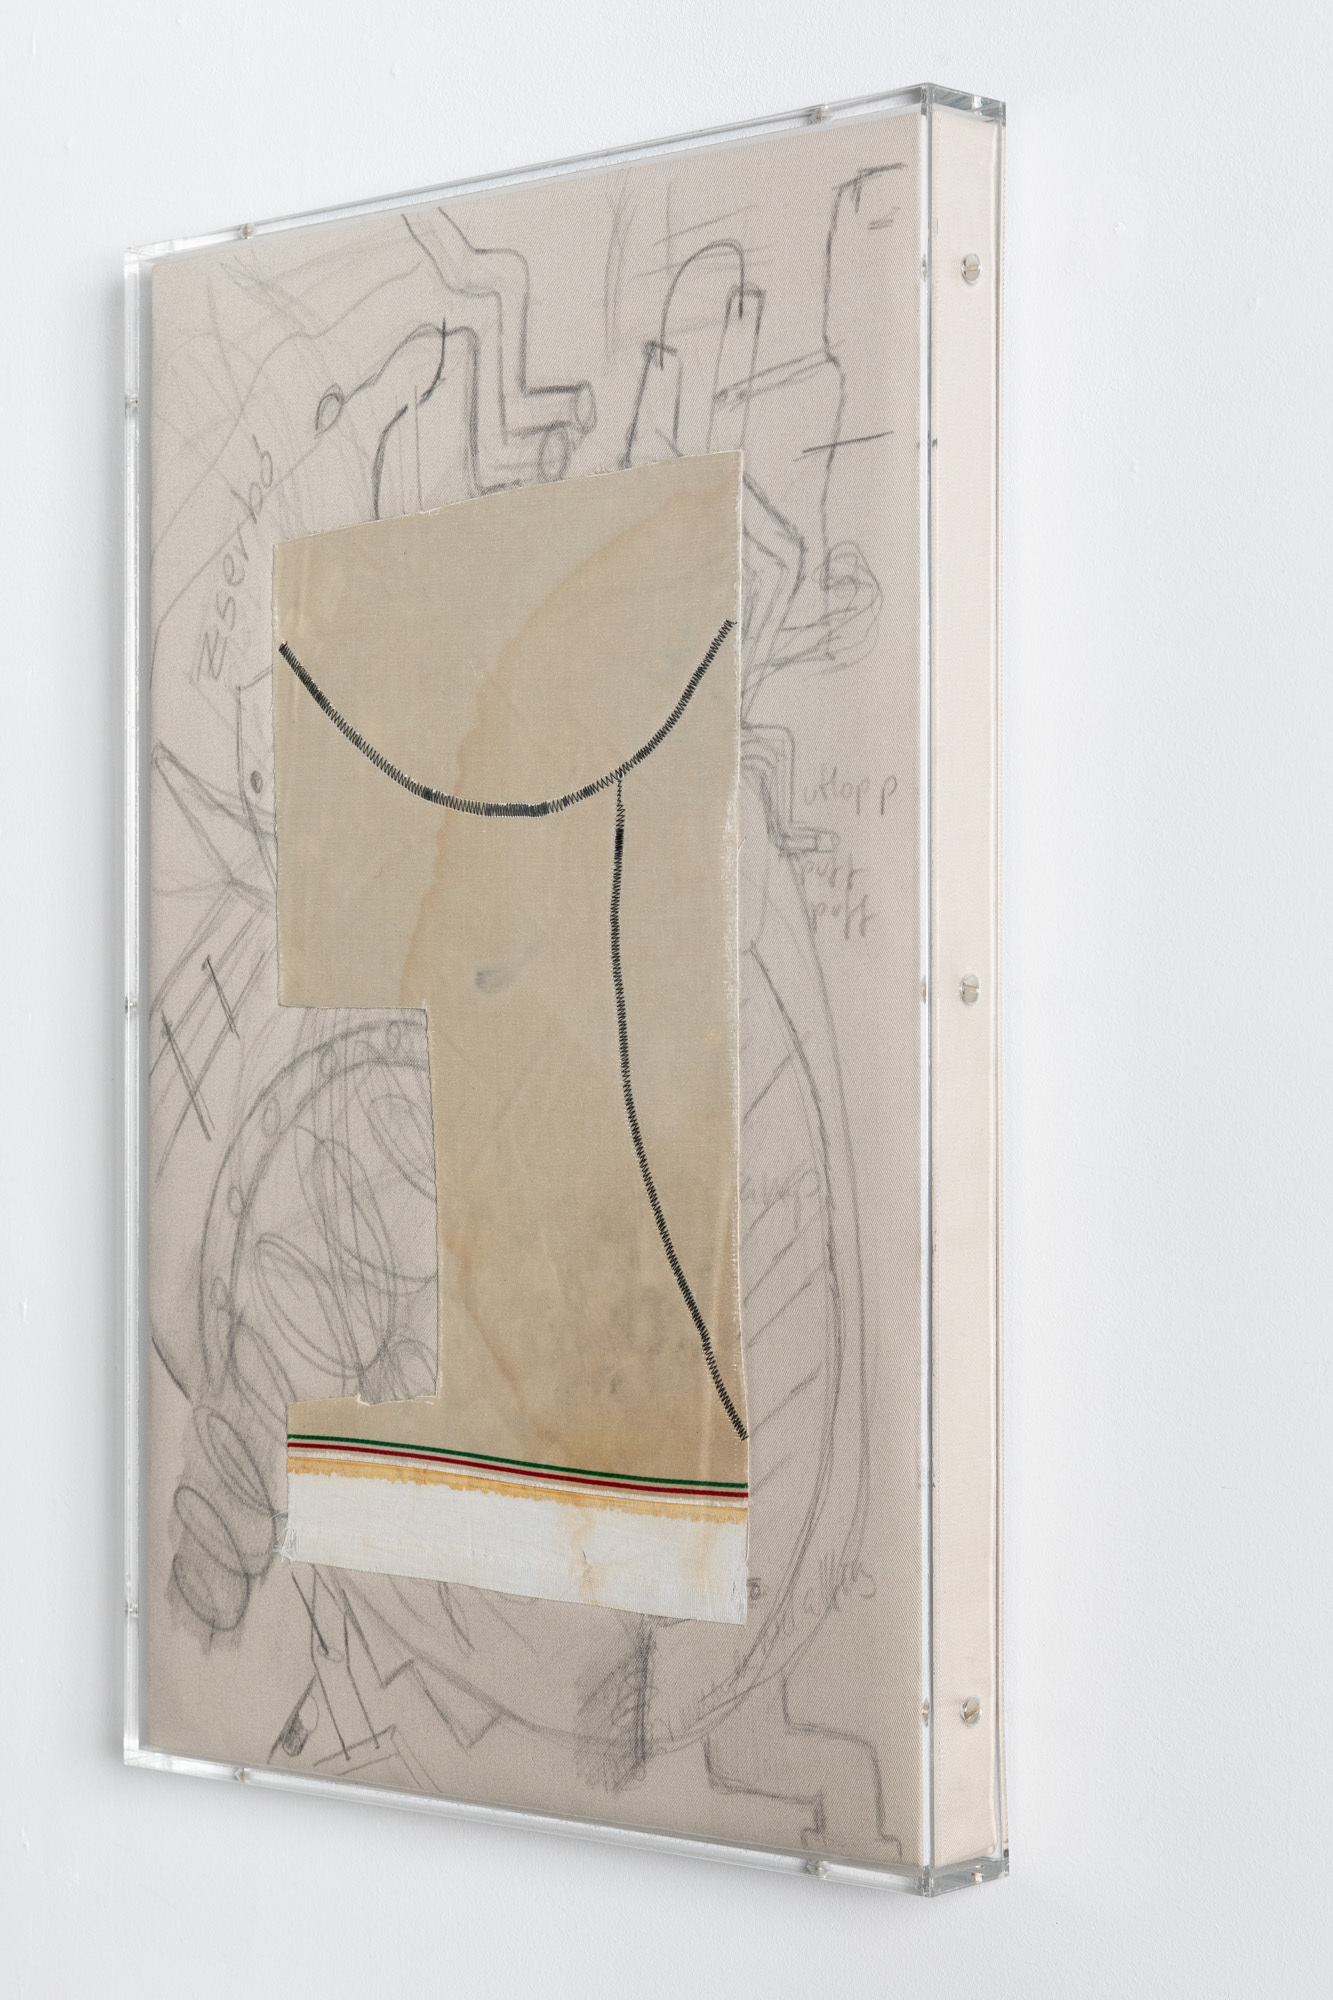 Minimal Information Kroki, 2020. Pencil on textile with textile collage in artist's frame (plexiglass, wood and aluminum), 62 x 42 x 6 cm